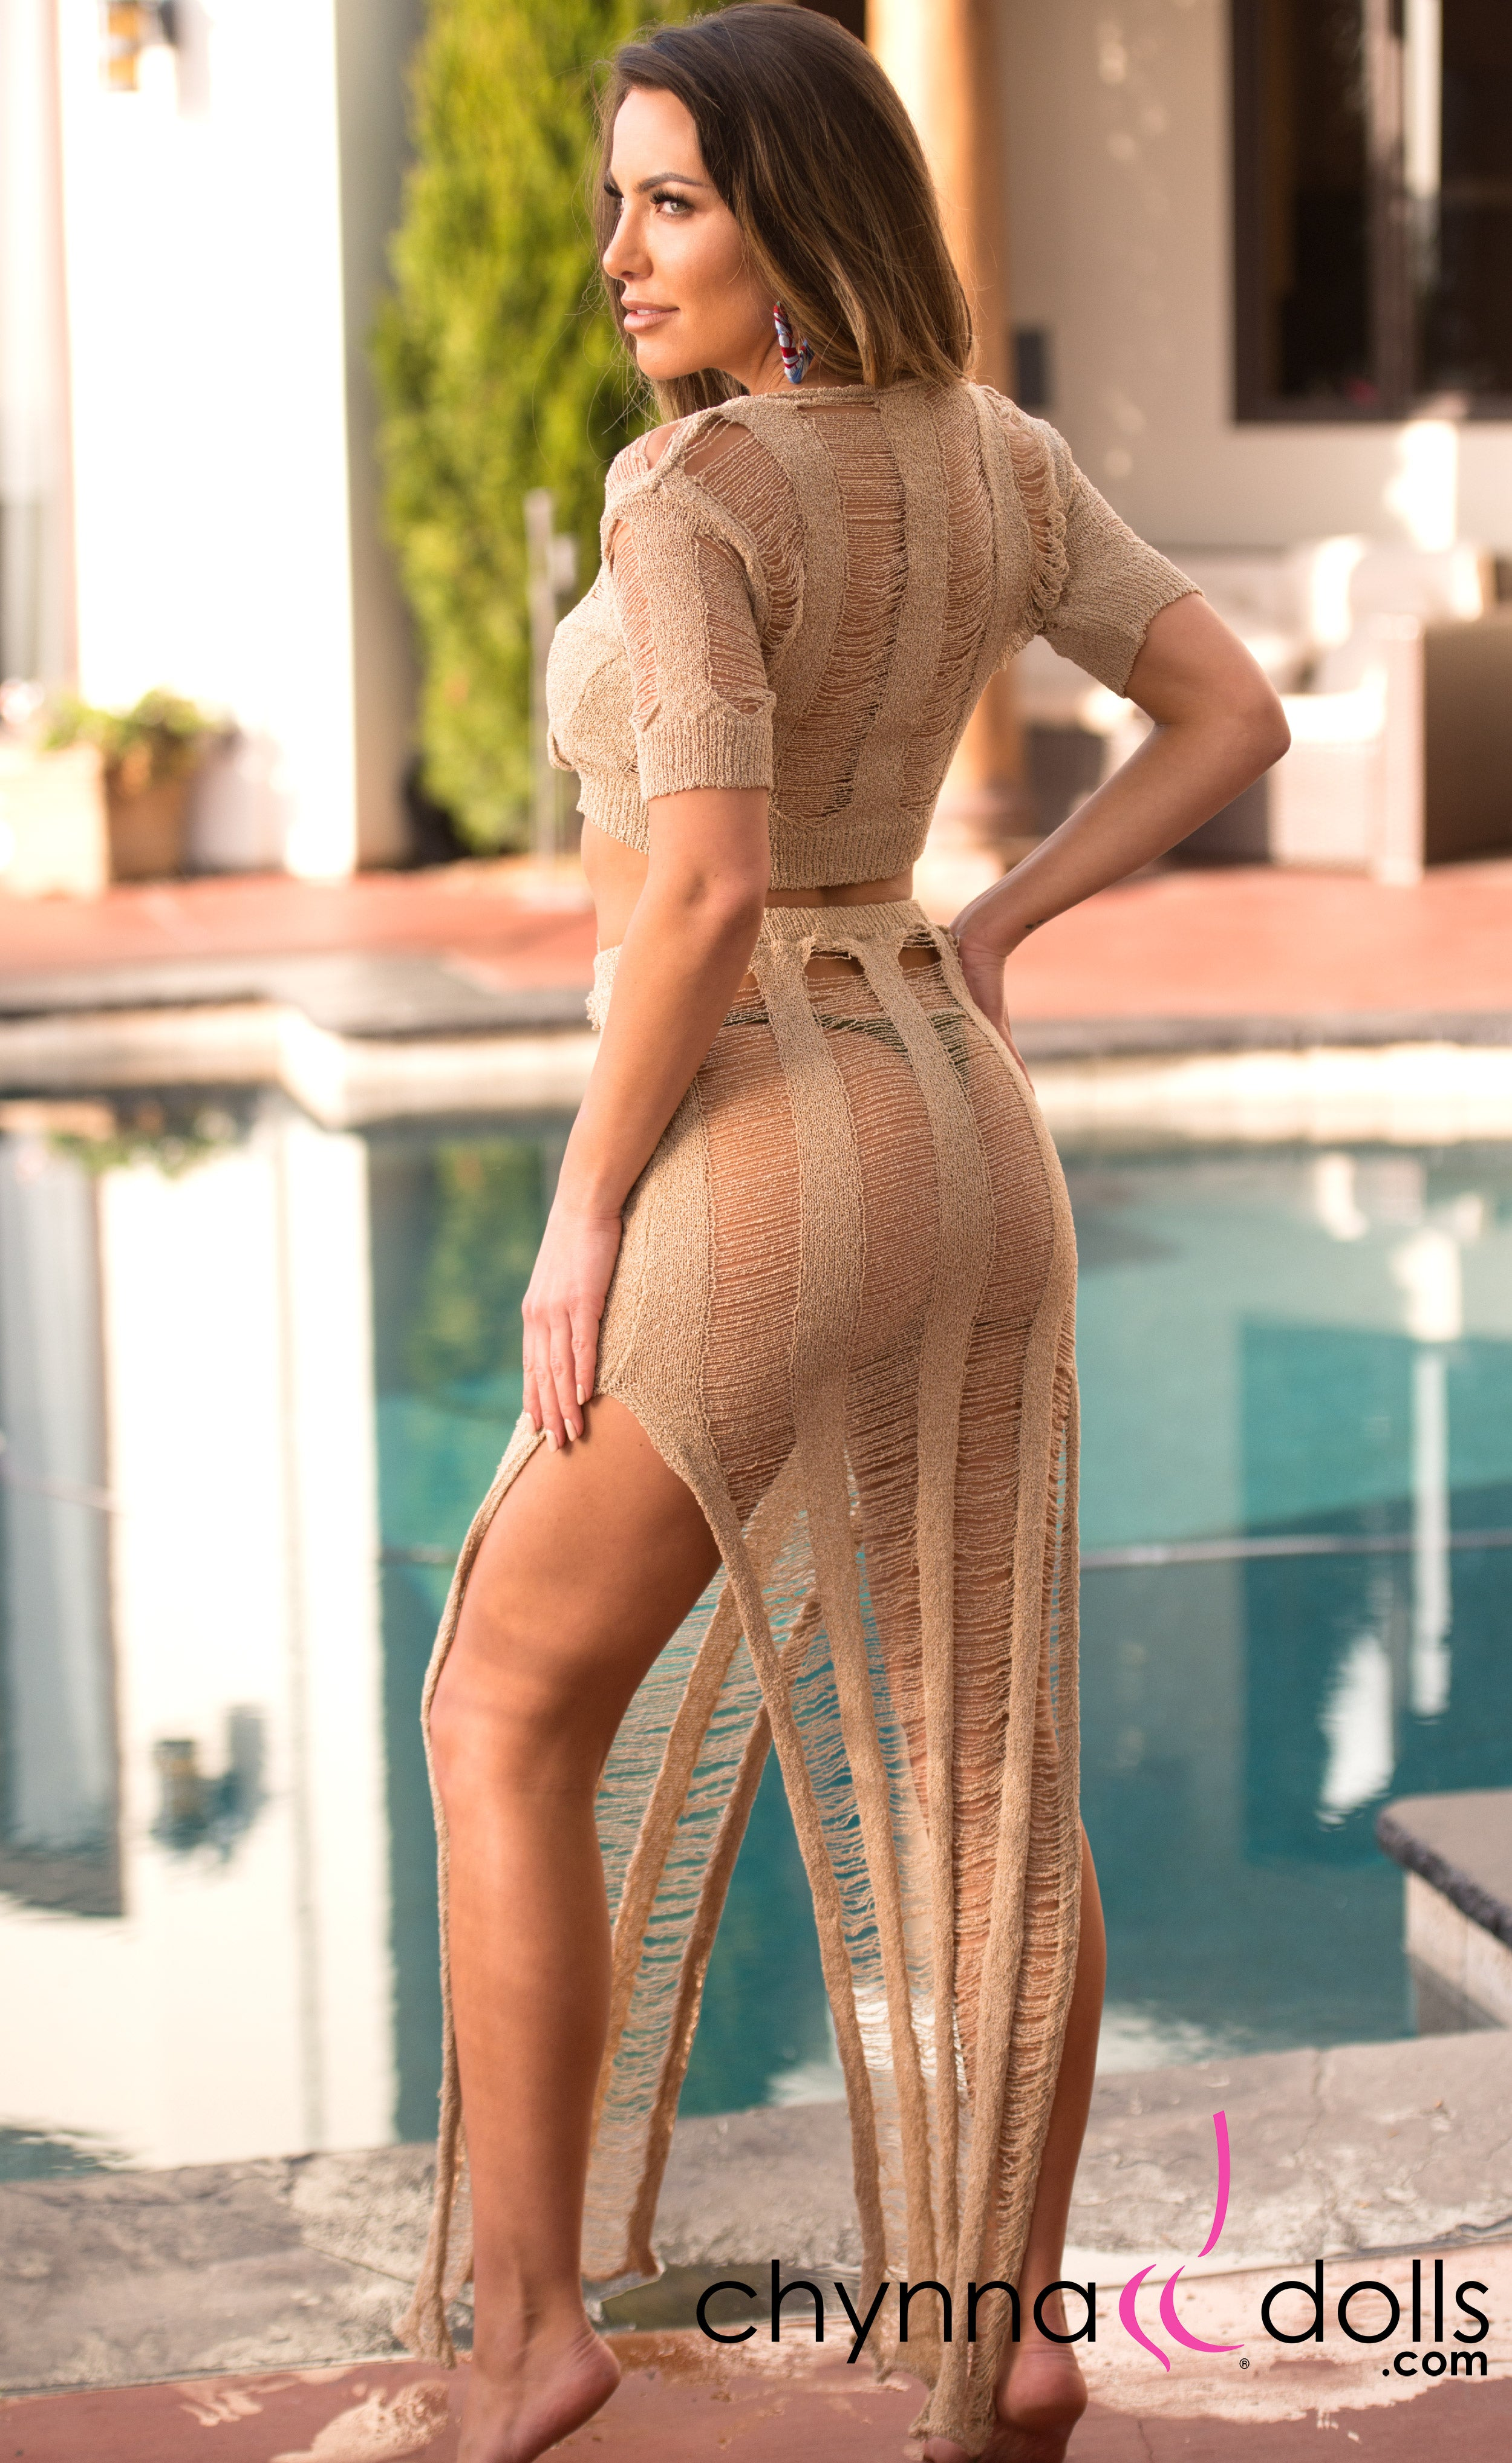 Rosalie: Crochet Tie Top Skirt Set in Tan - Chynna Dolls Swimwear